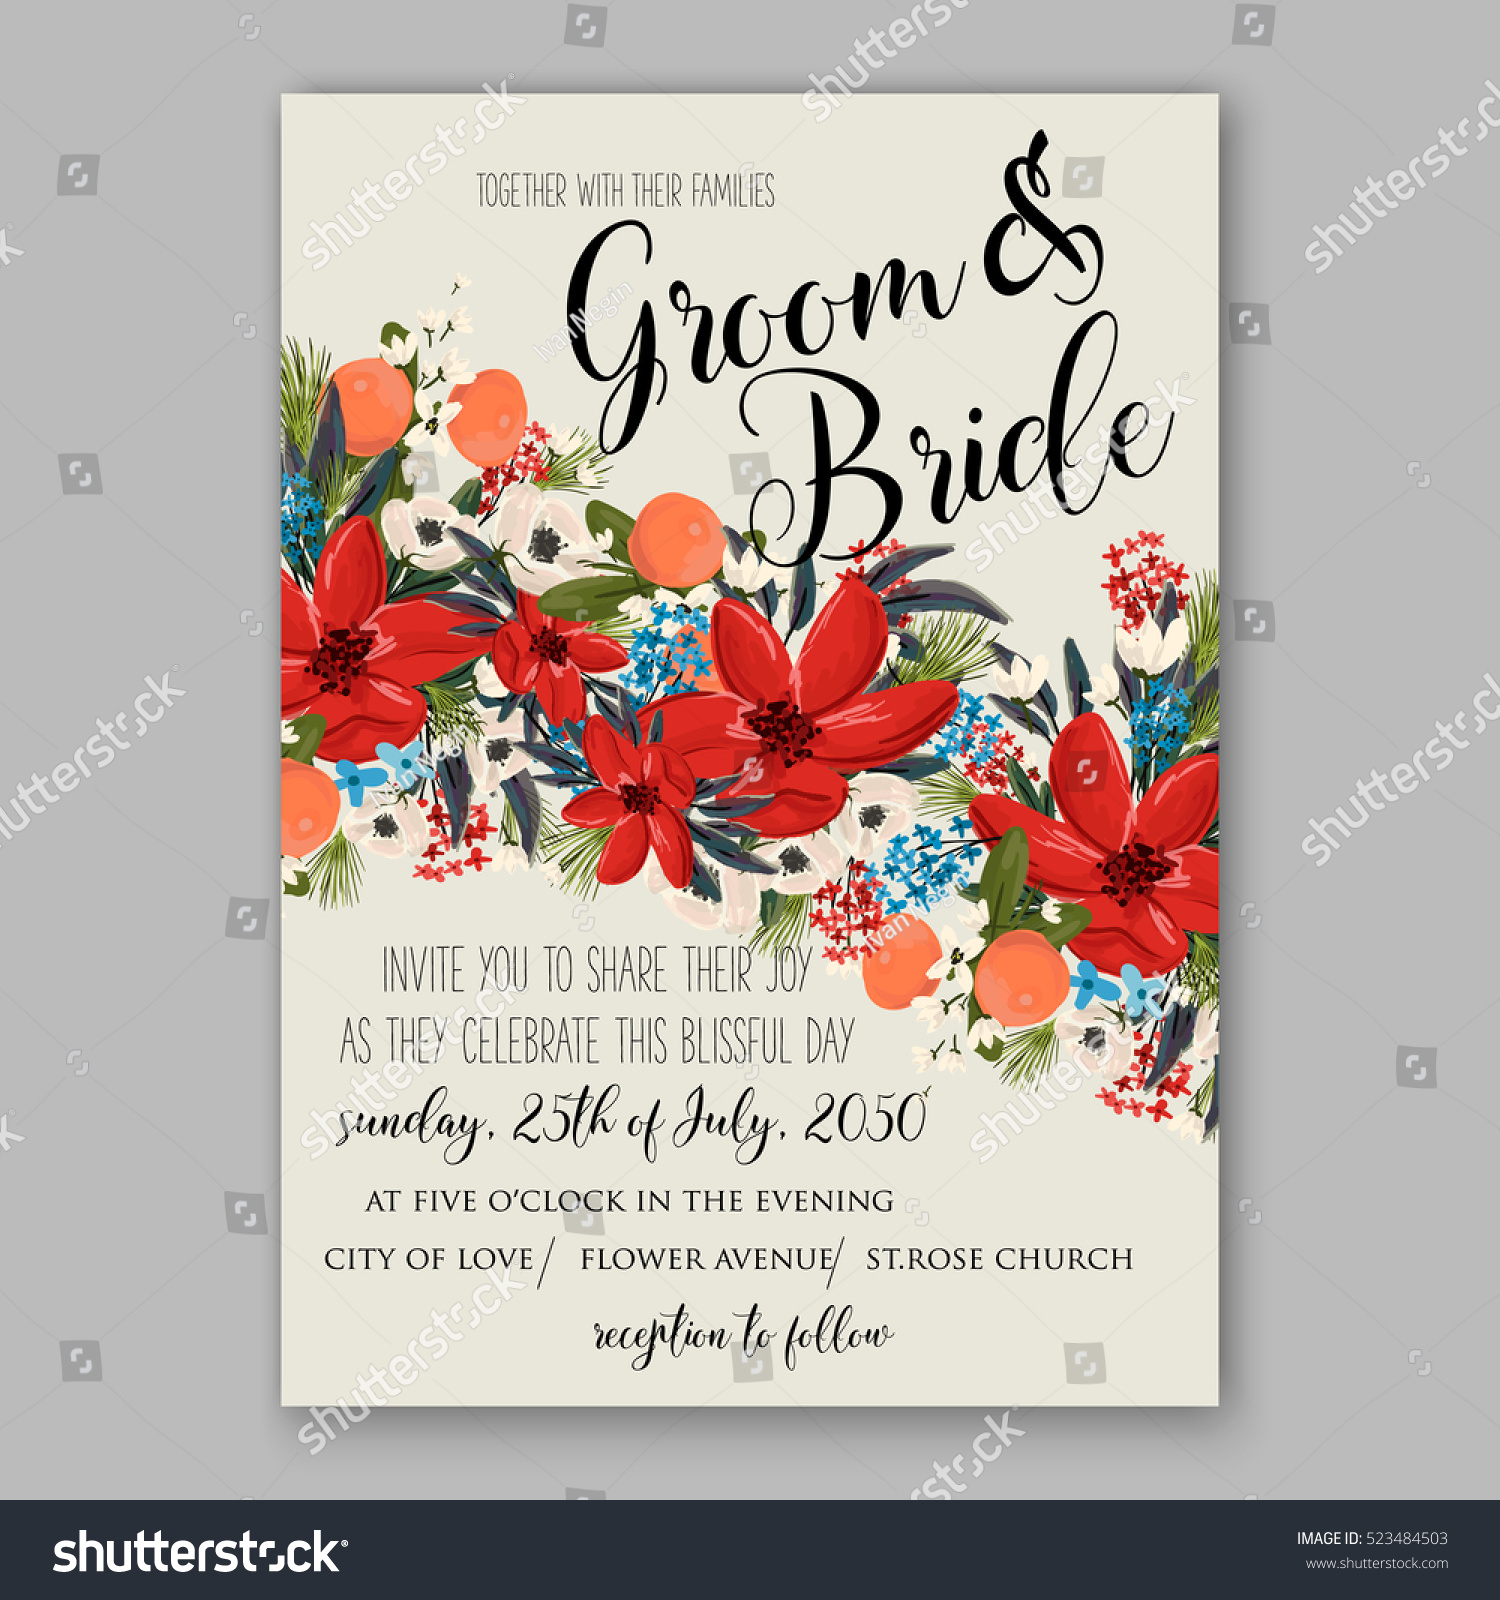 Funky Wedding Invitation Templete Pictures - Invitations and ...